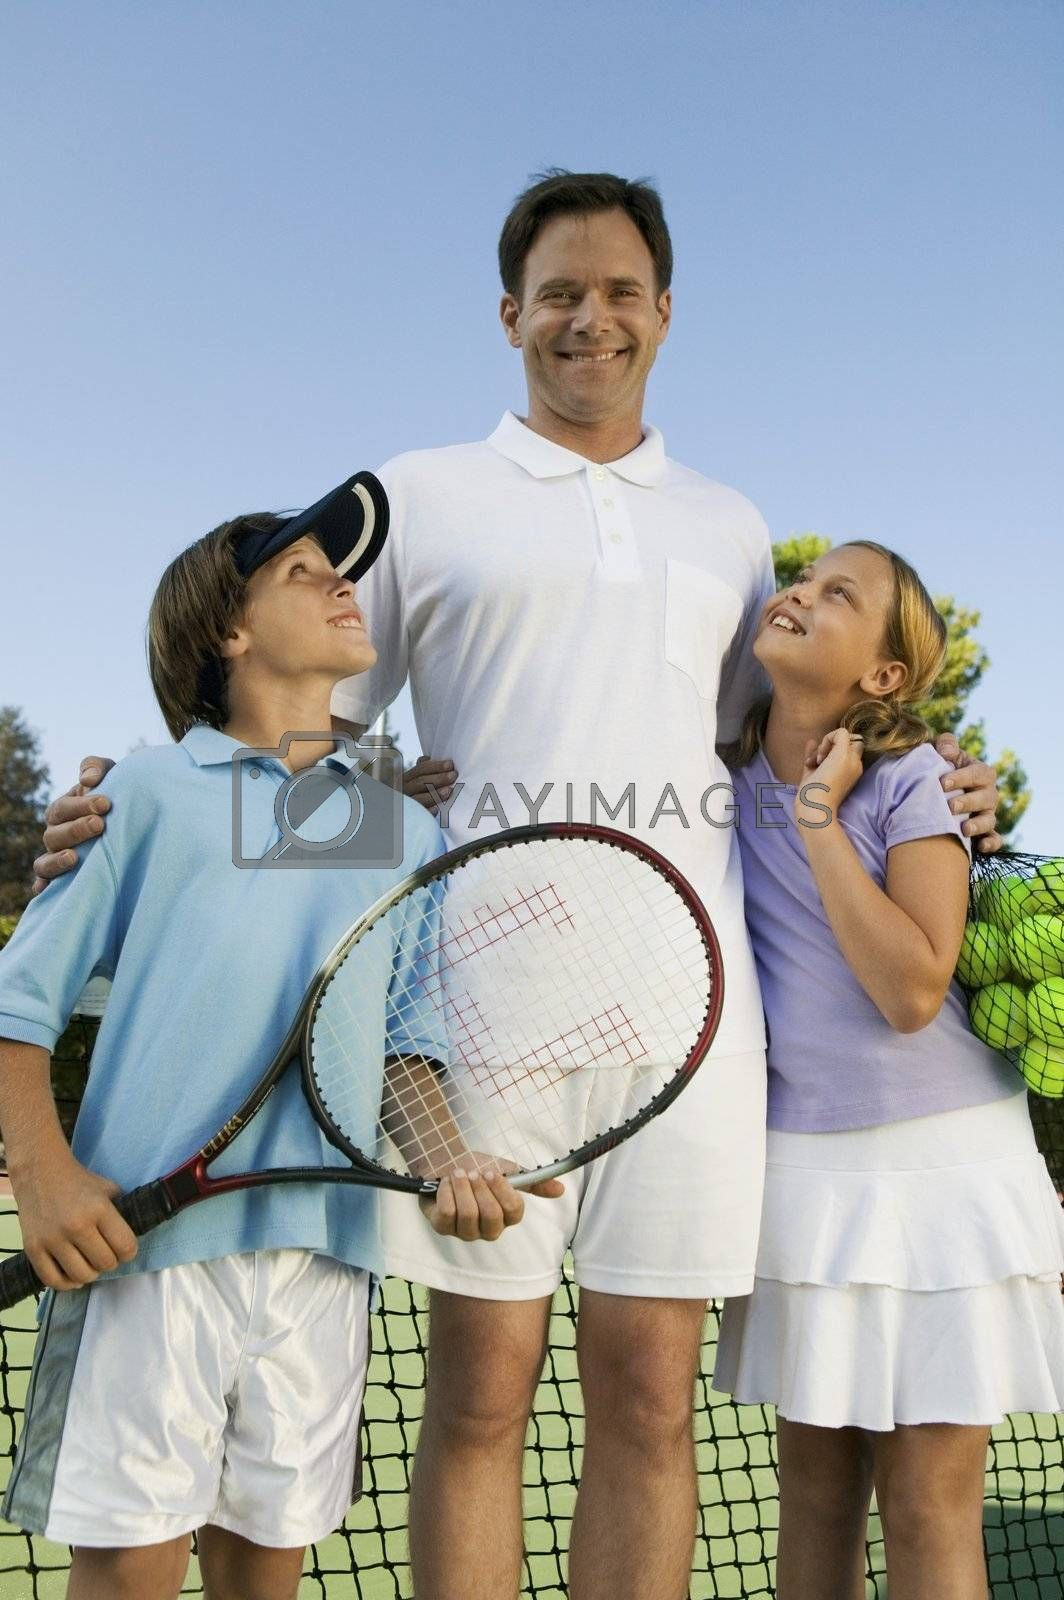 Father with Son and Daughter on Tennis Court